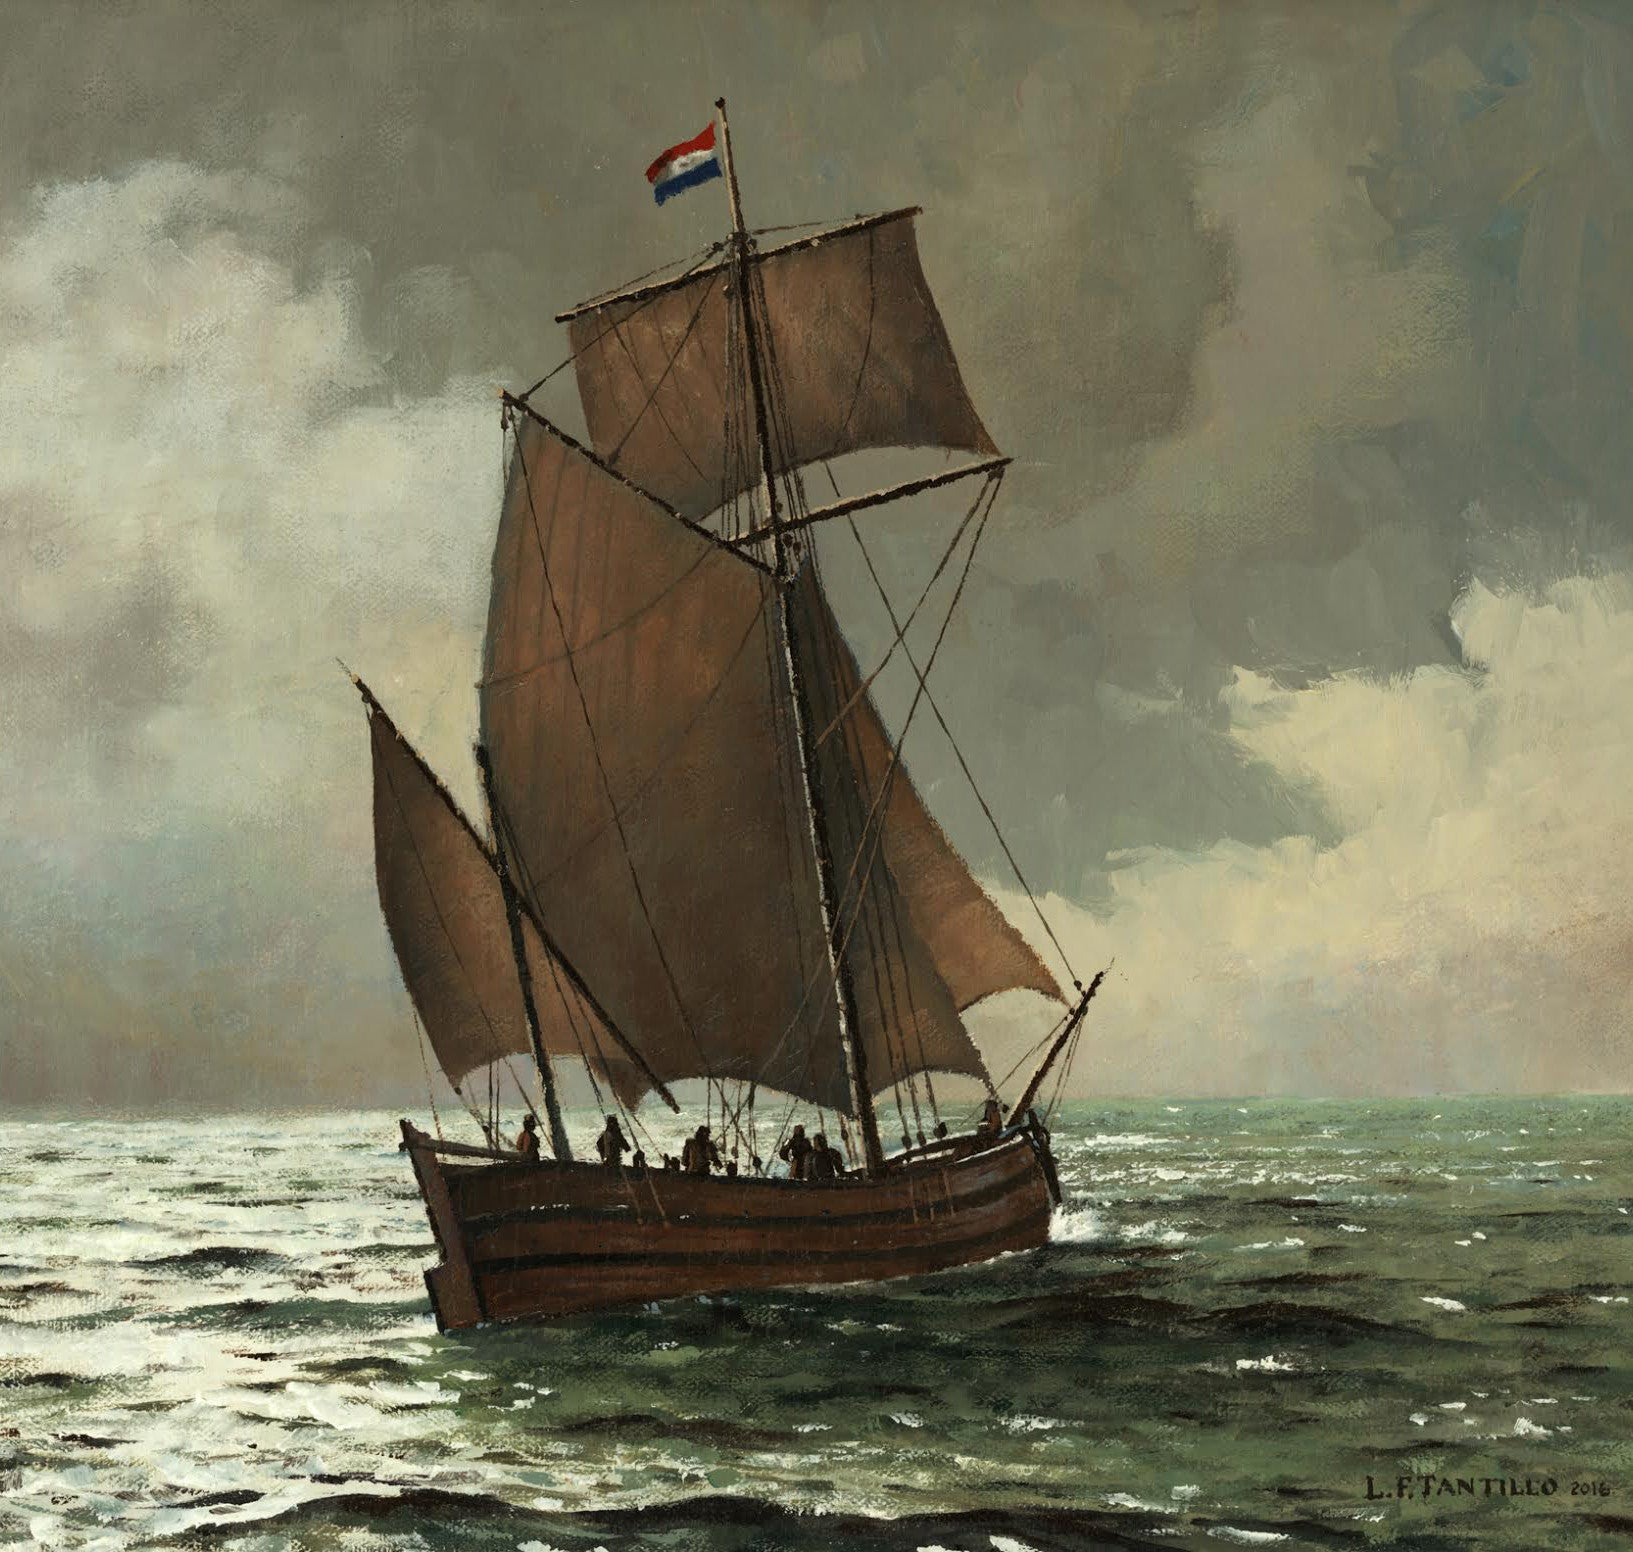 The Dutch in Connecticut: Exploring New Netherland's Fresh River. June 9 and 10 in Hartford.